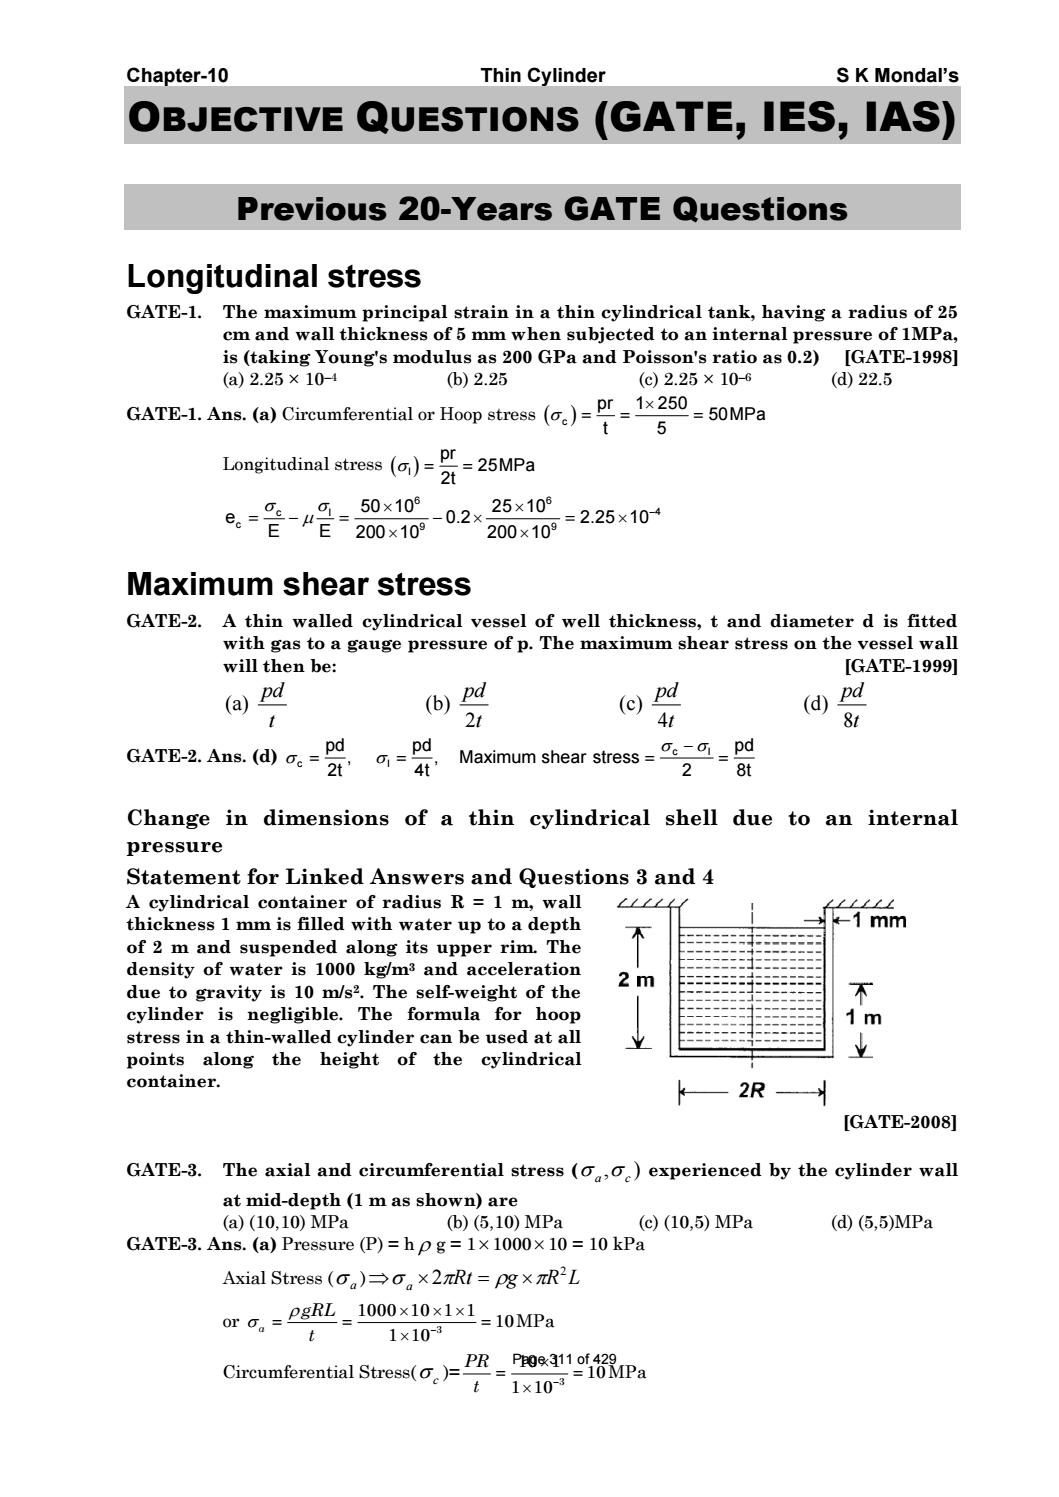 Strength of materials by s k mondal pdf by S Dharmaraj - issuu